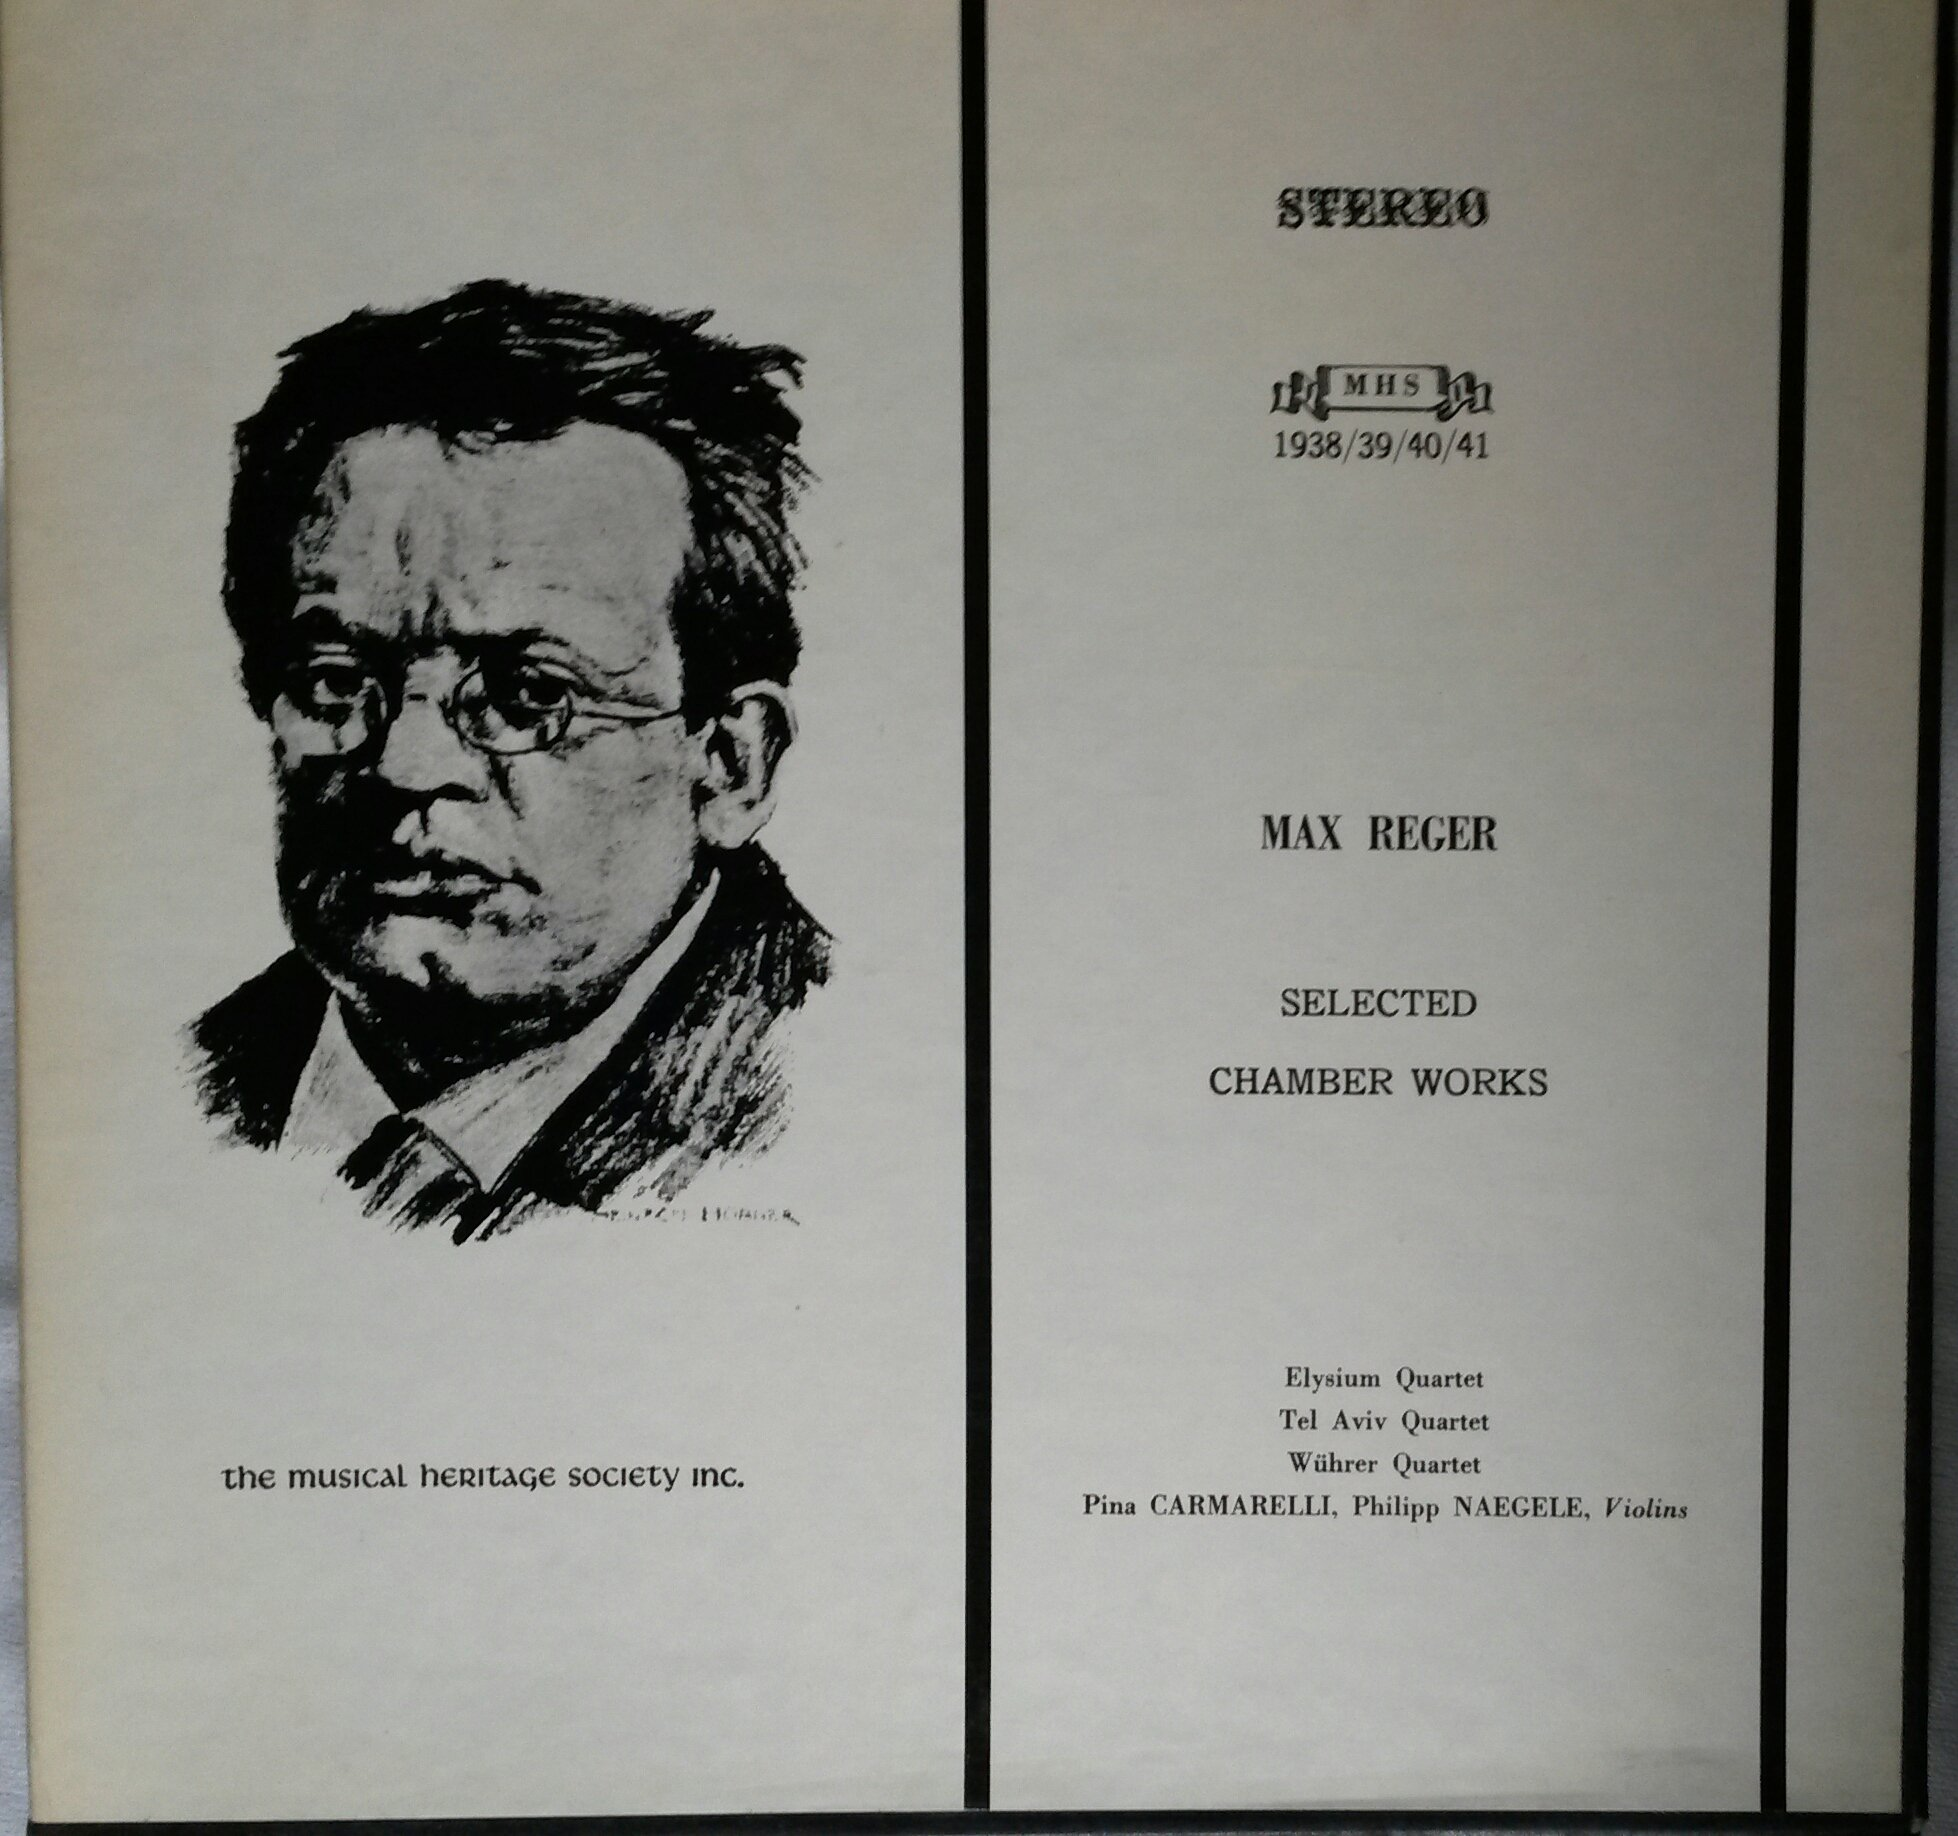 Reger: Selected Chamber Works ~ Piano Quartet in D Mi.,Op.113/Piano Quartet in A Mi.,Op. 133/Piano Quintet in C Mi.(Posth)/String Quartet No. 5 in F# Mi.,Op. 121/Allegro,A Ma. (No Op.)/3 Duos (Canons & Fugues) in the Old Style, Op. 131b for 2 Vn.